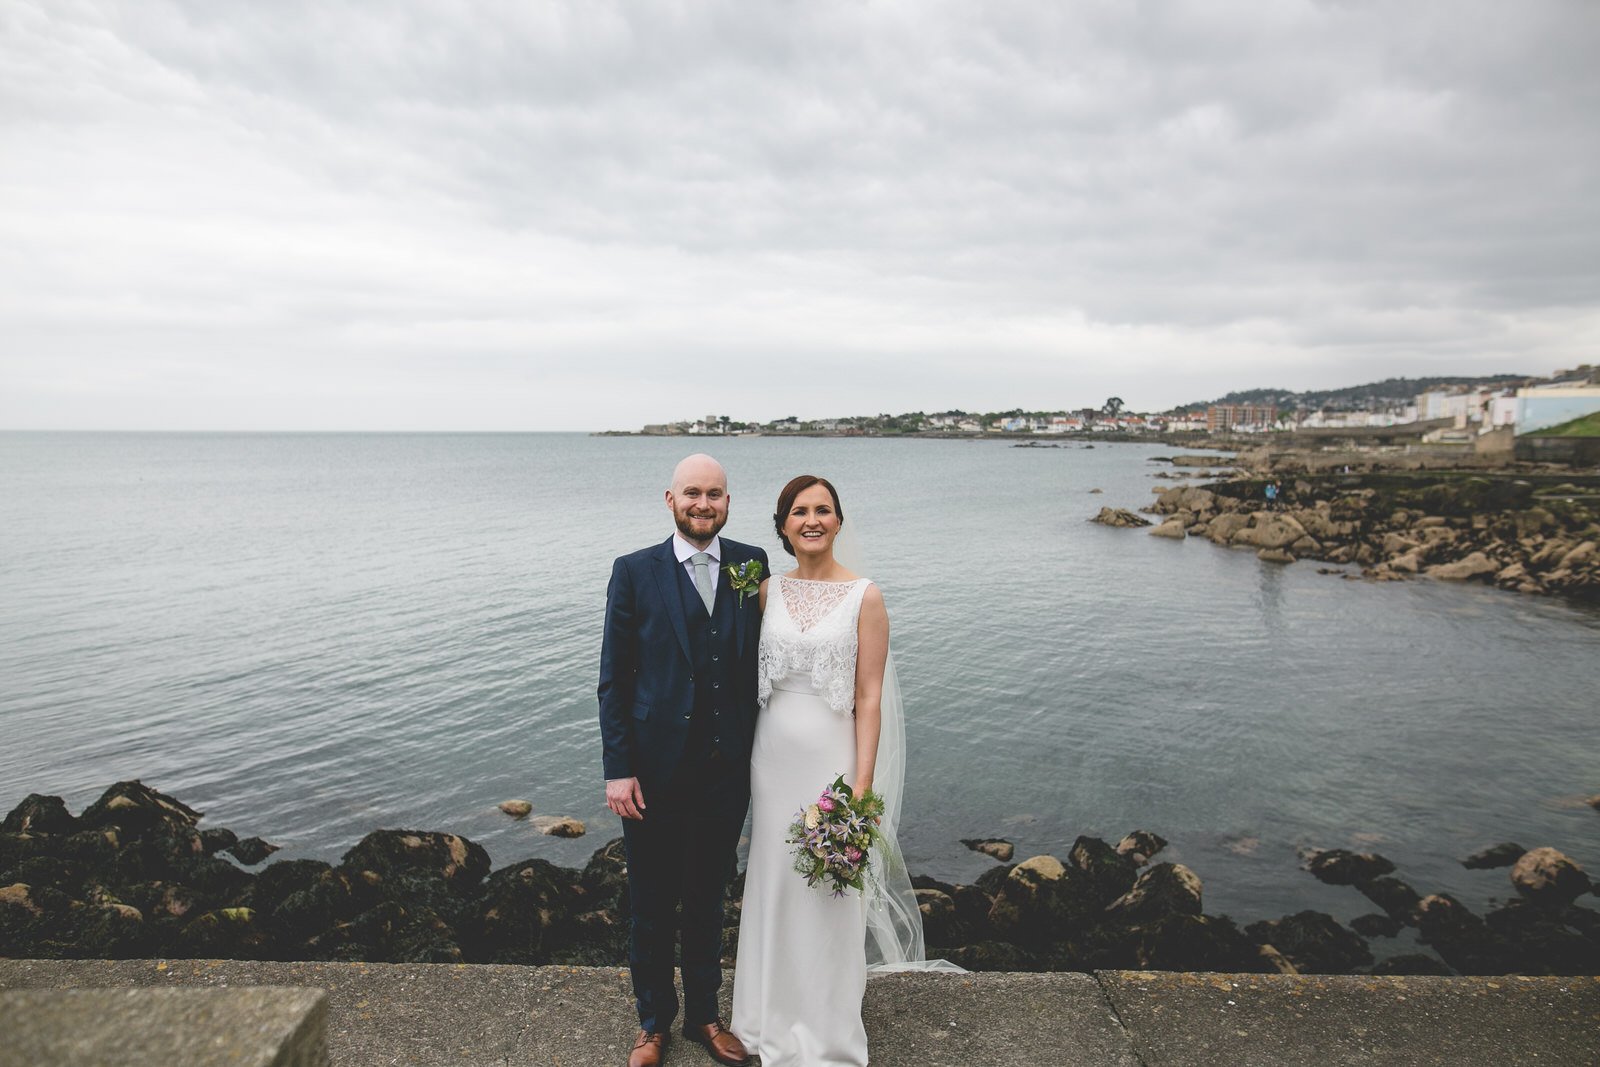 Dun Laoighre Pier - Haddington Hotel wedding